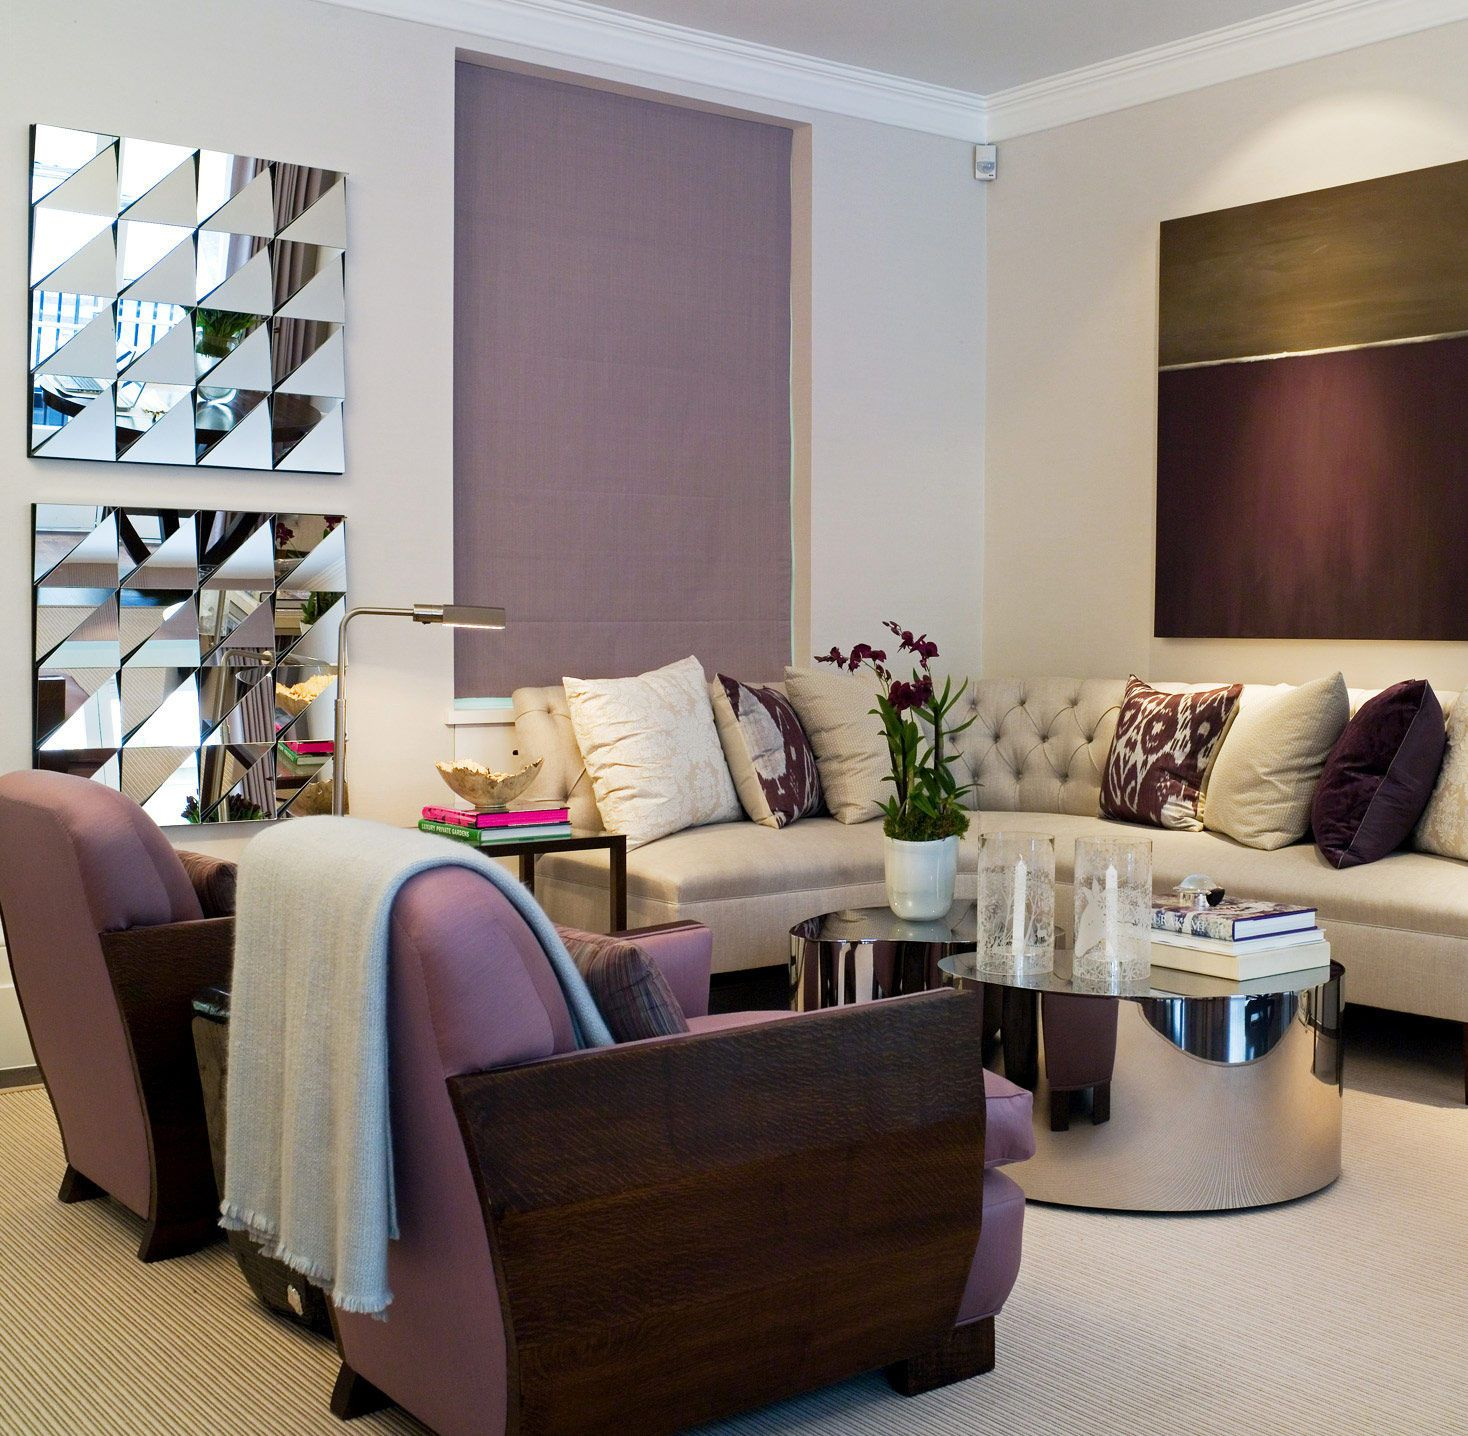 Plum purple and green living room feels like home - Purple and green living room decor ...